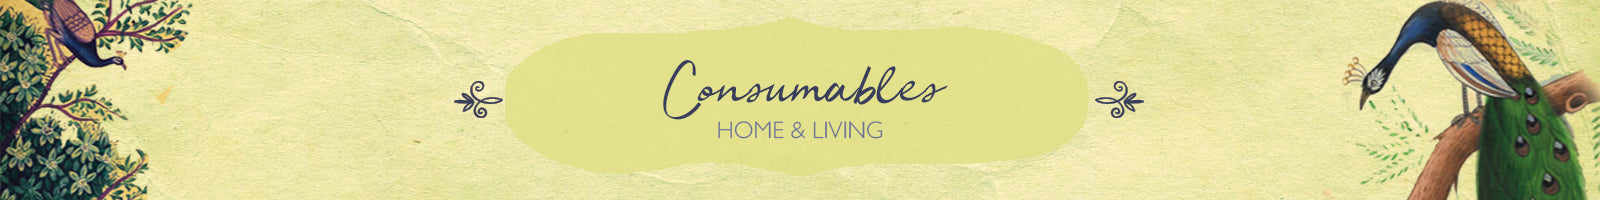 Authentic Handcrafted Consumables Items by The India Craft House